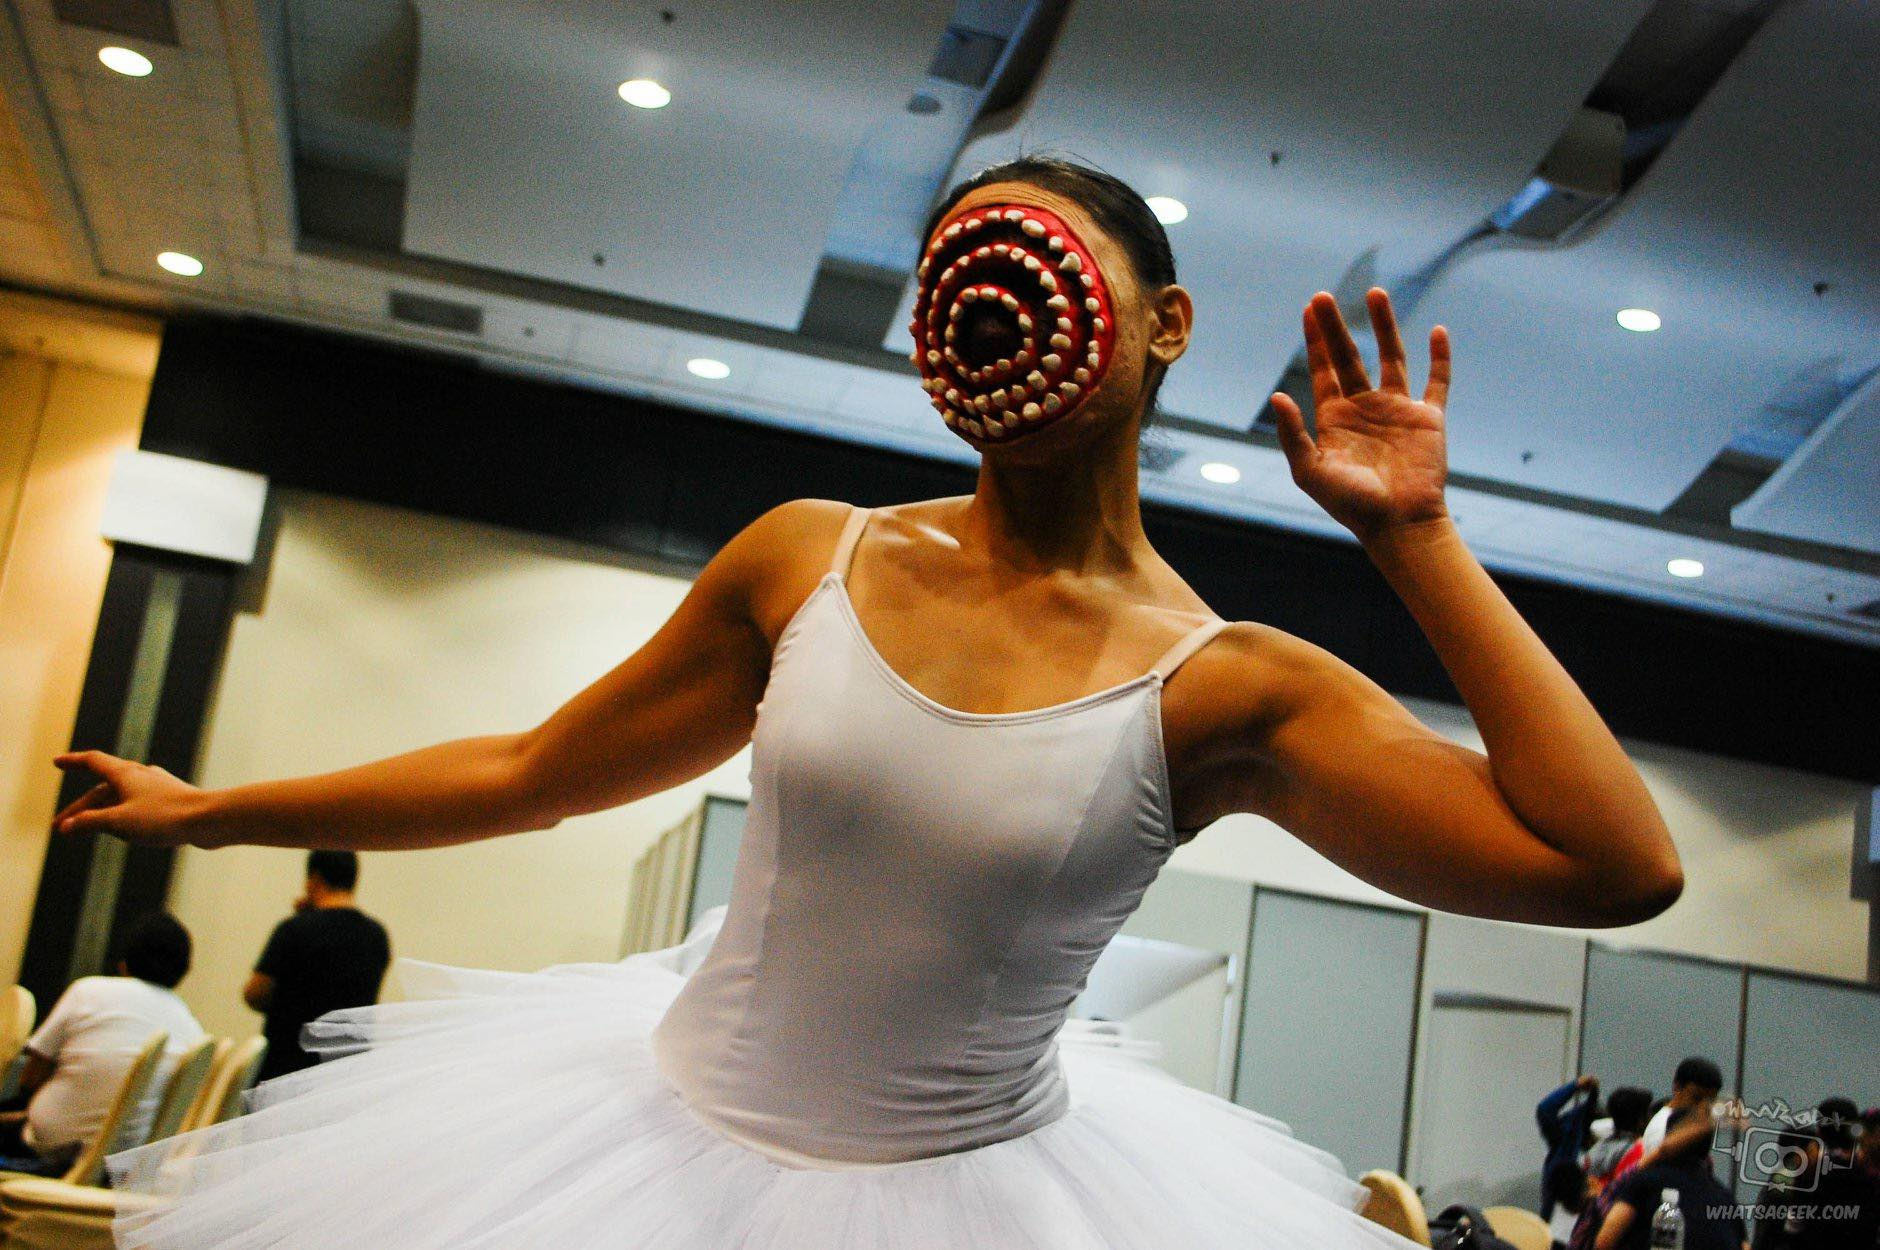 Ballerina Dentata halloween costume